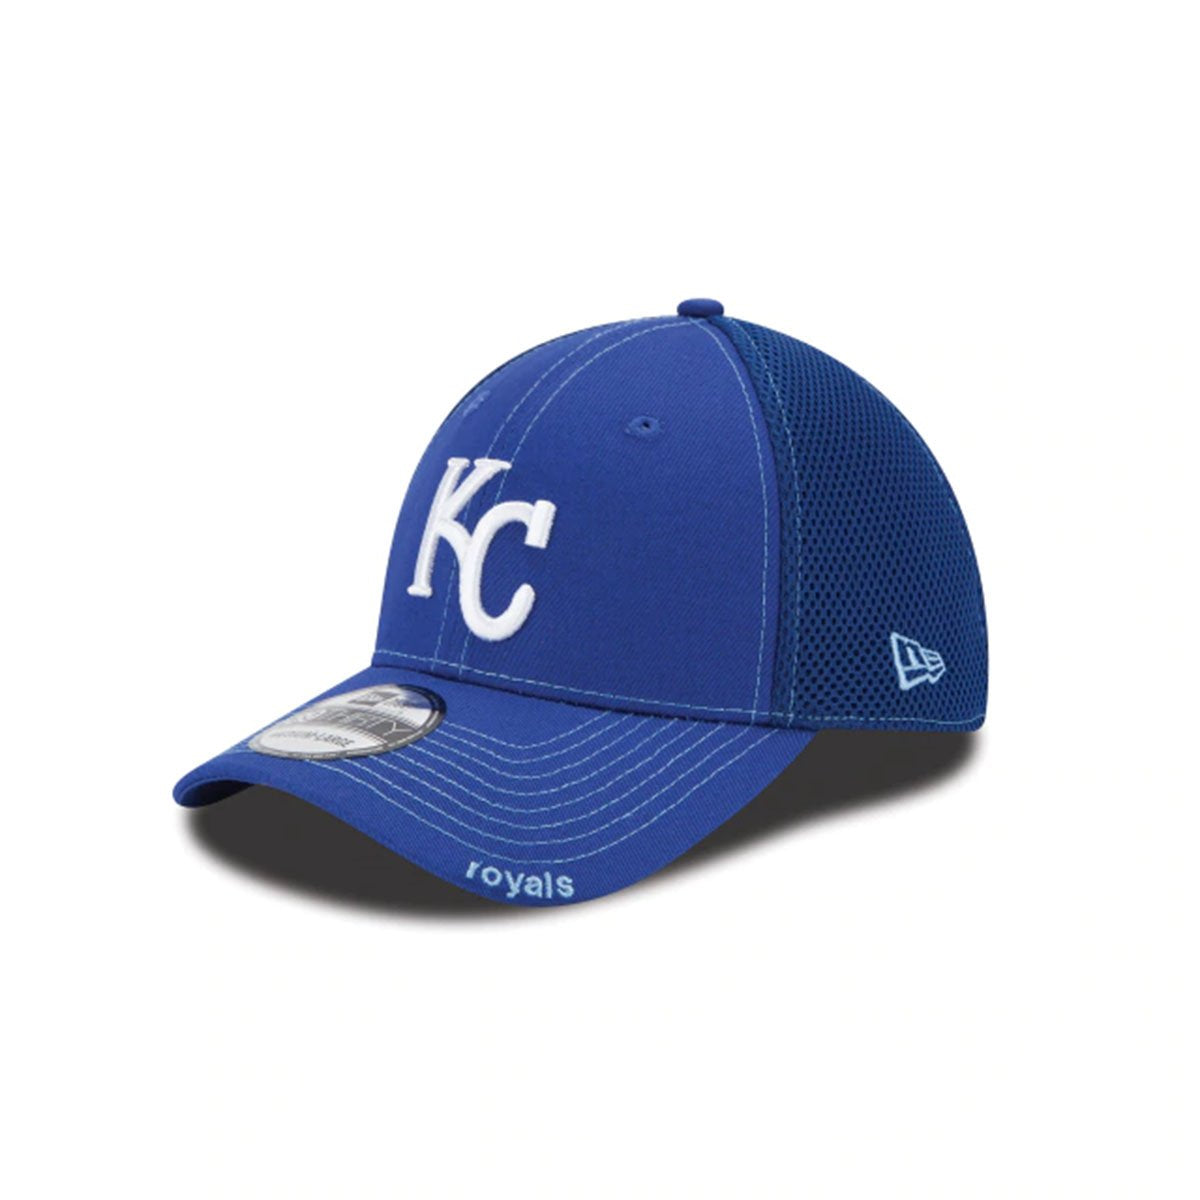 KANSAS CITY ROYALS 39THIRTY STRETCH FIT BLUE/WHITE